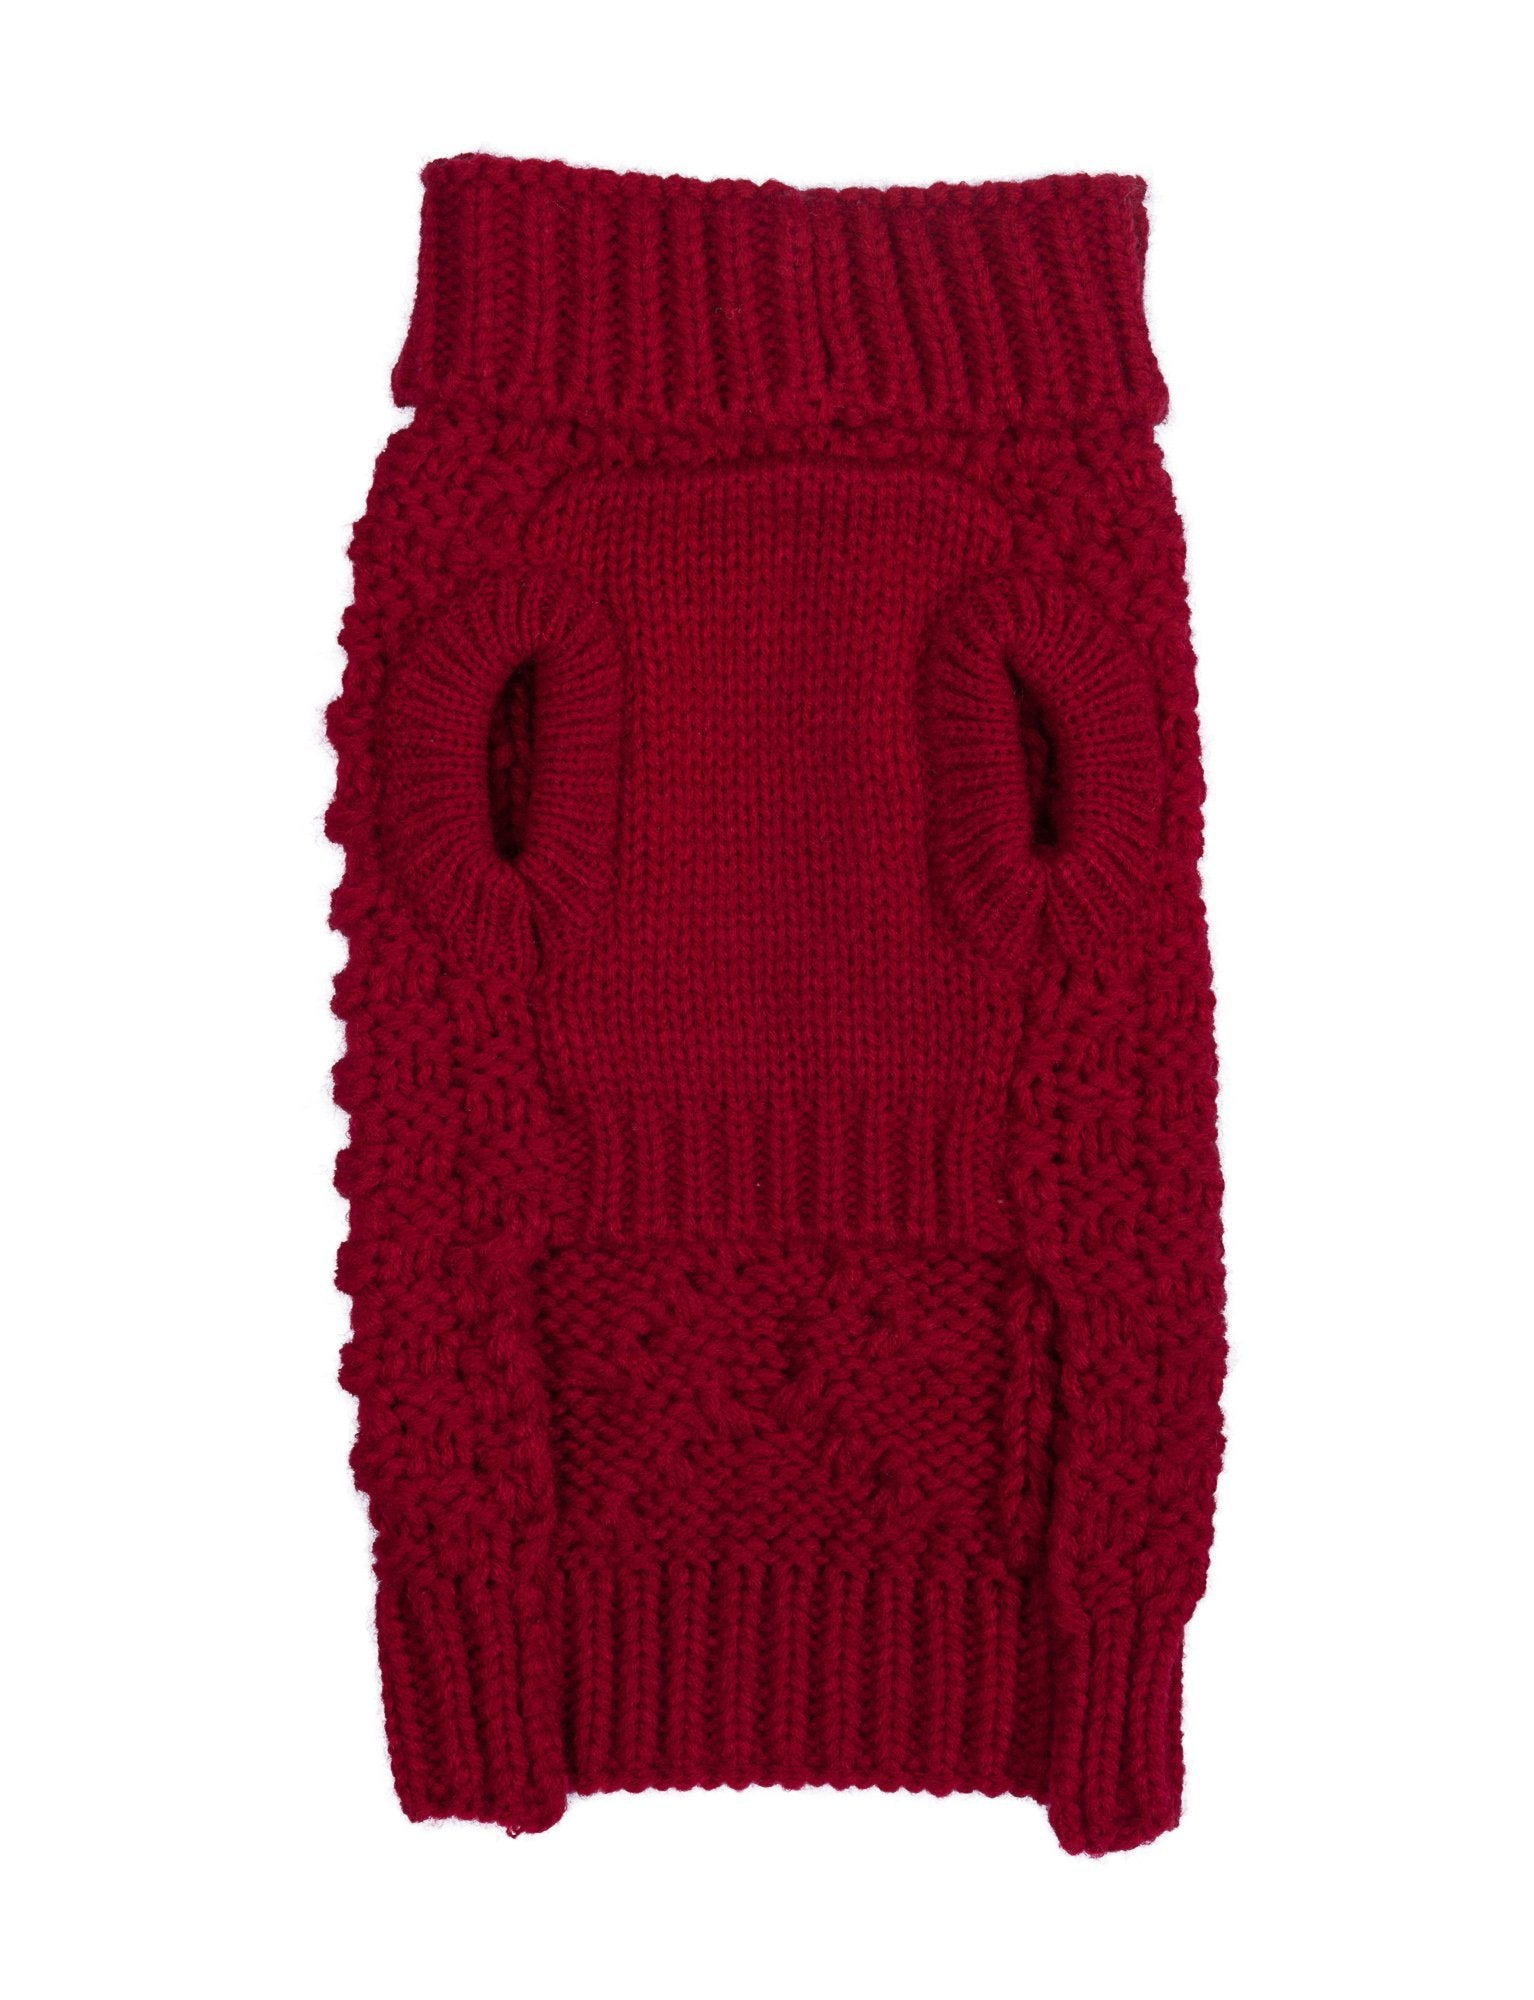 fabdog Red Cable Knit Dog Sweater